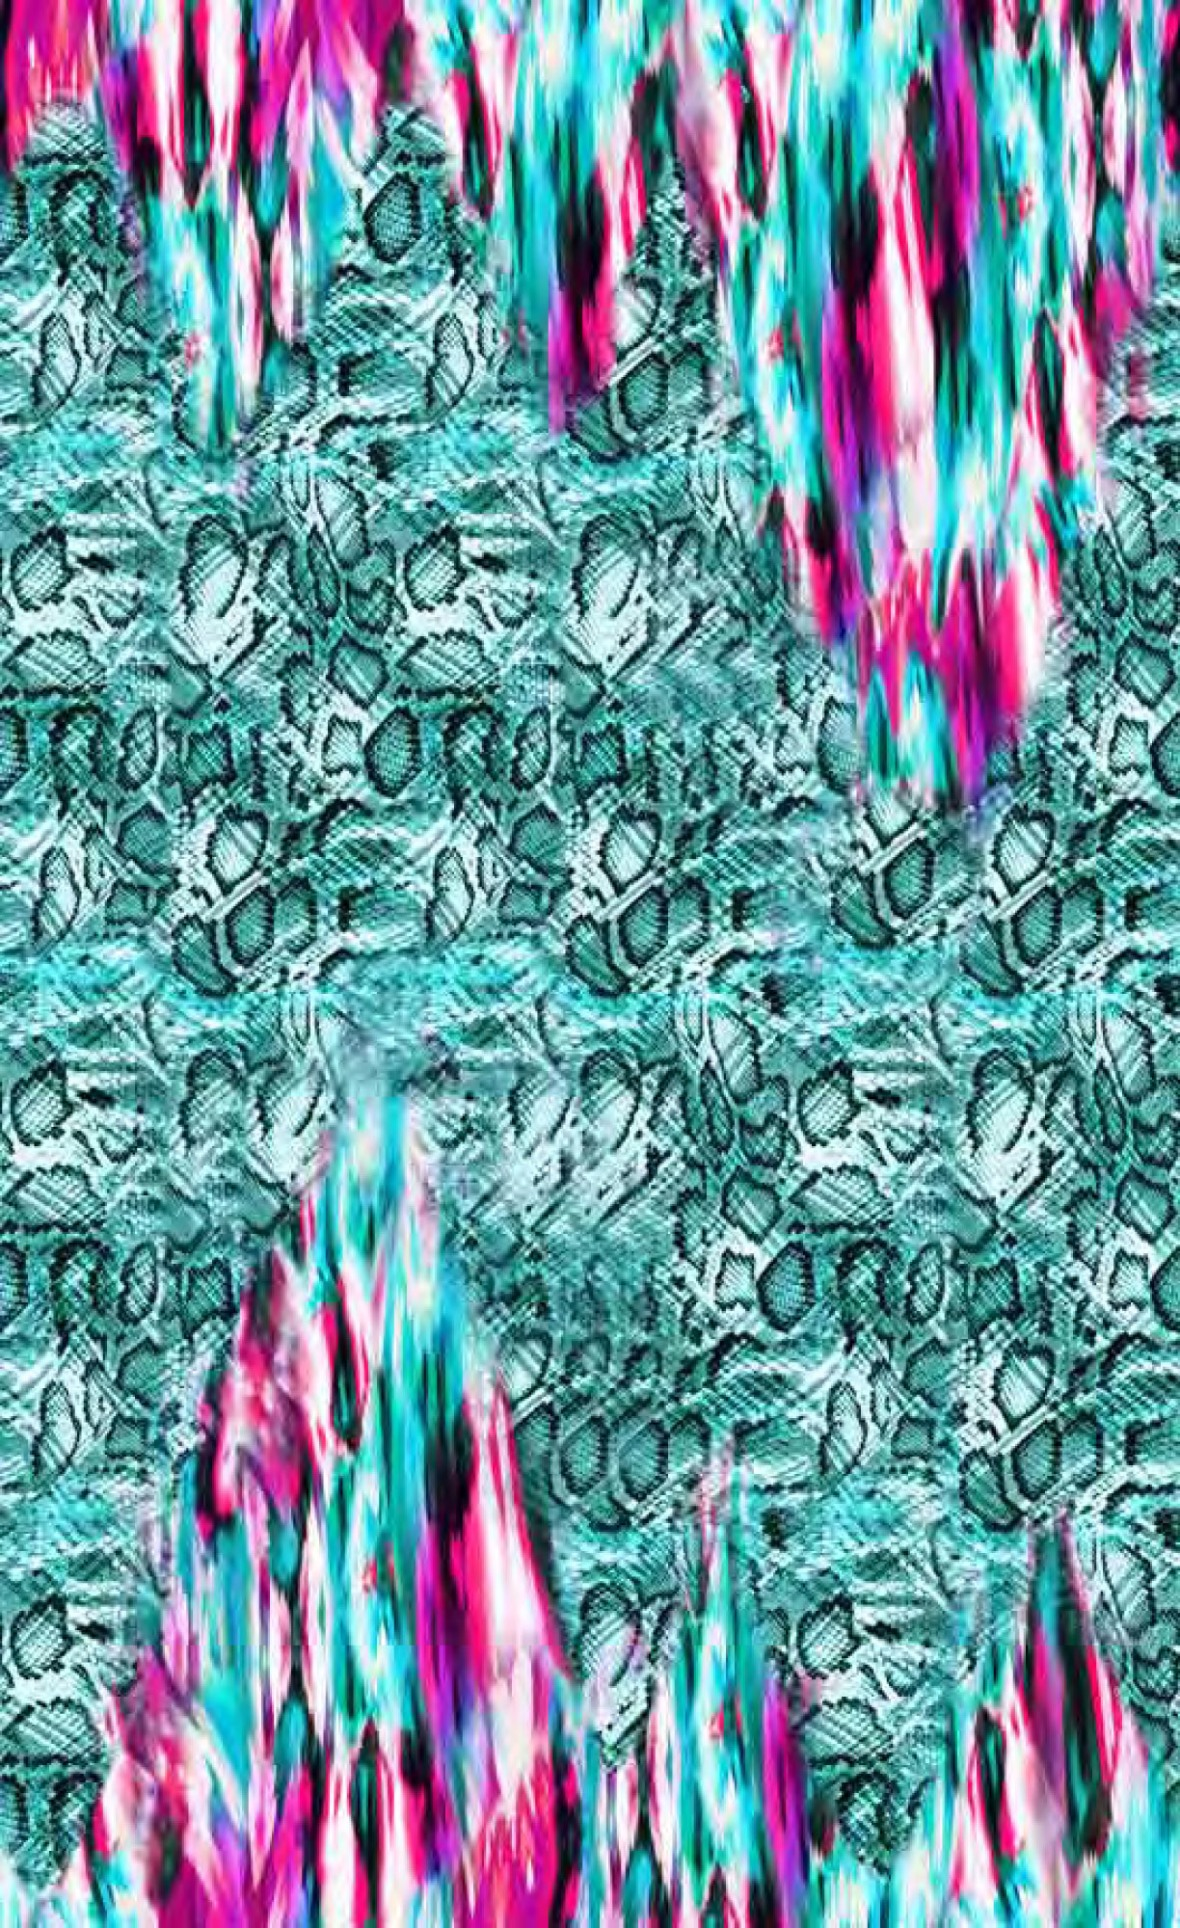 + ROSEANN SCRIVENS + complex repeat patterns photoshop-1